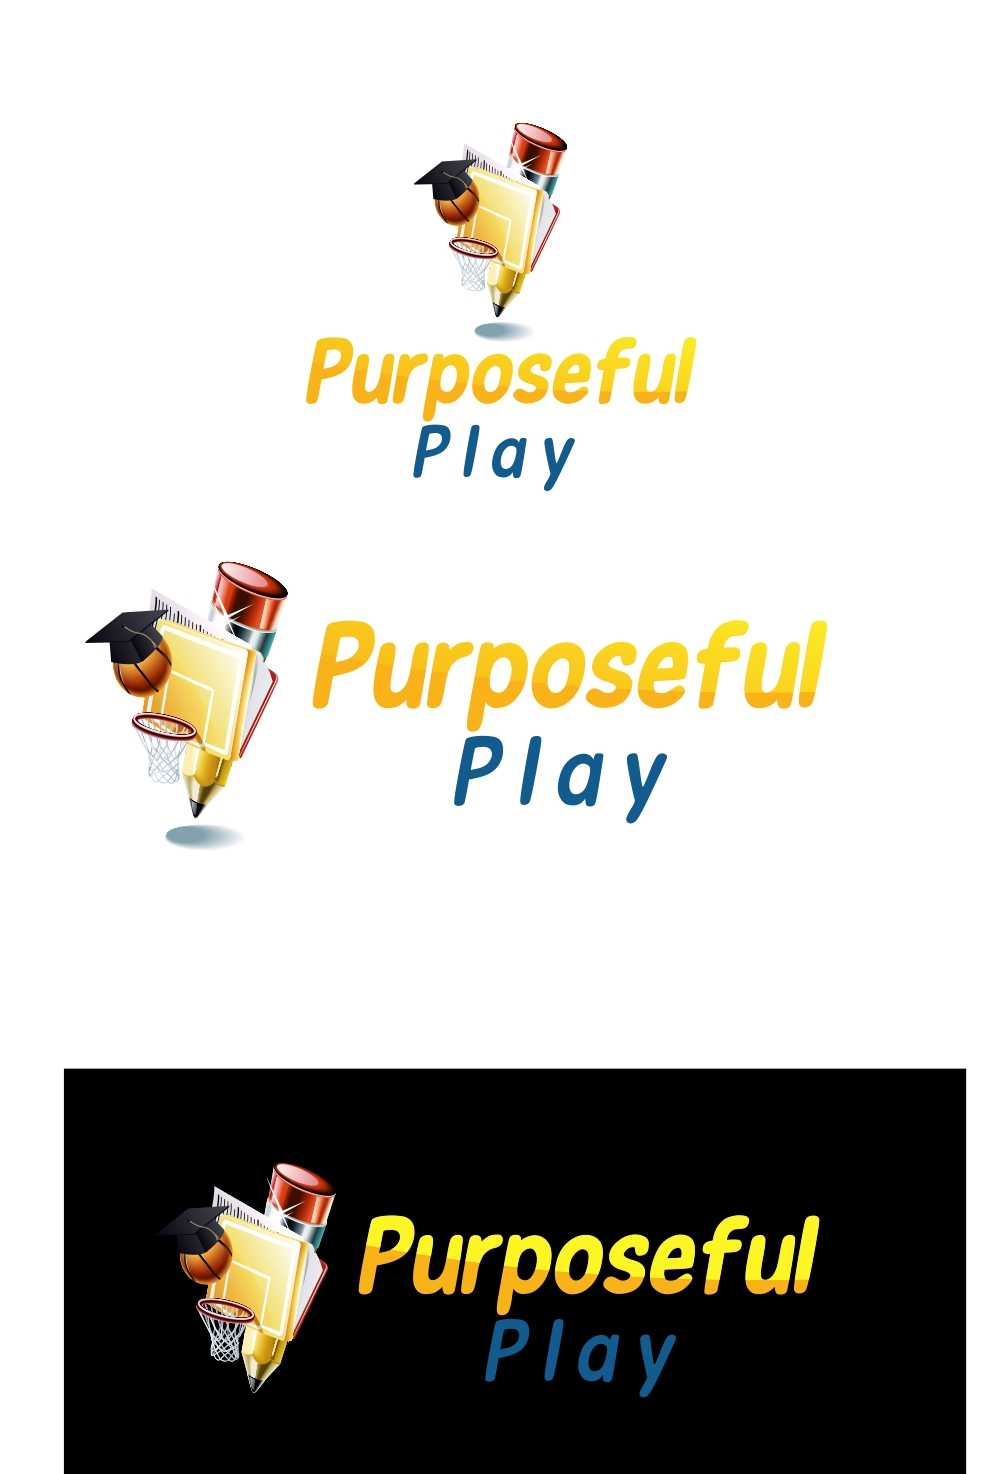 Logo Design by Private User - Entry No. 45 in the Logo Design Contest Purposeful PLAY Logo Design.